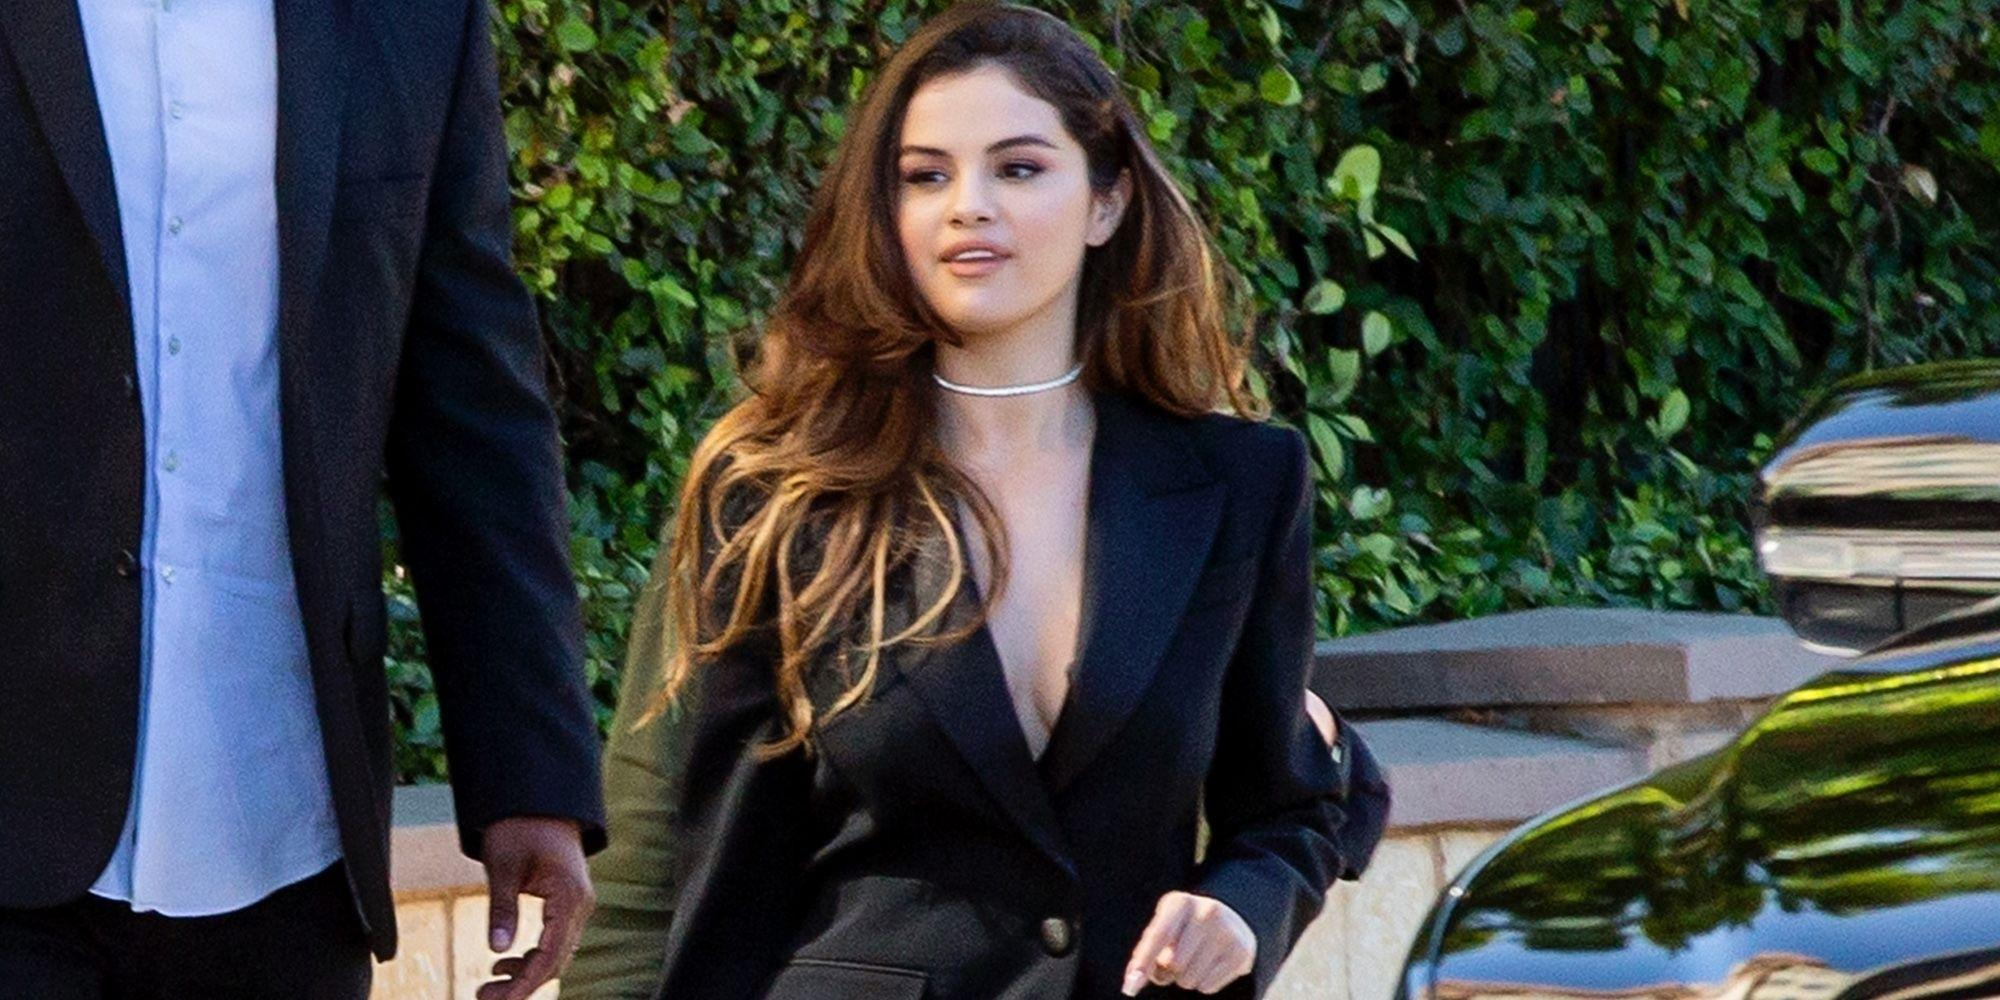 Selena Gomez Comes To Hailey Baldwin's Defense After The Model Gets Accused Of Dissing Her!